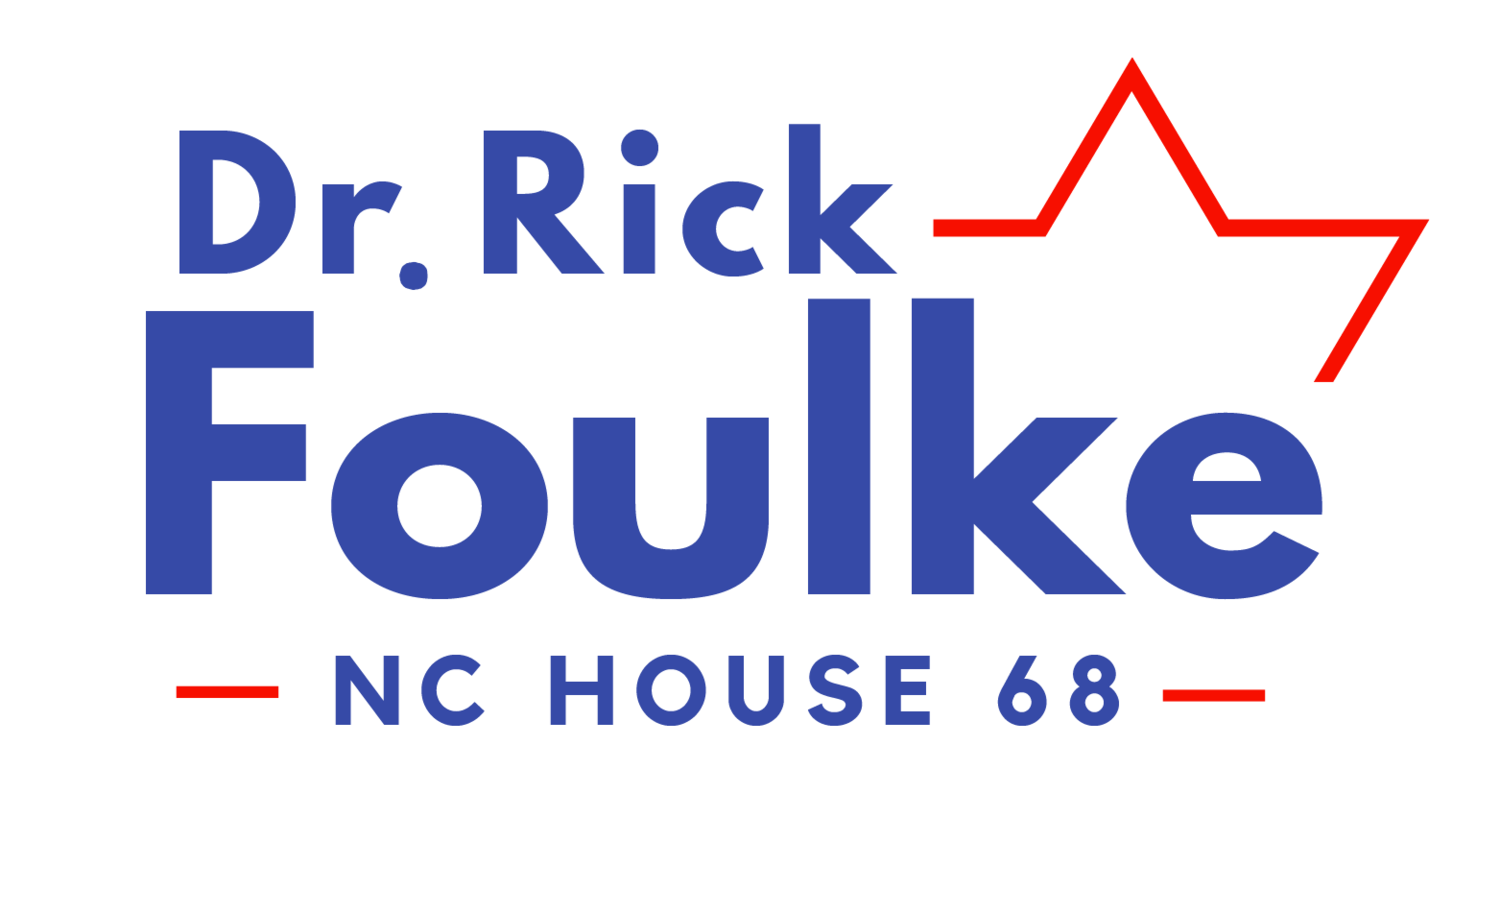 Dr. Rick Foulke for NC House